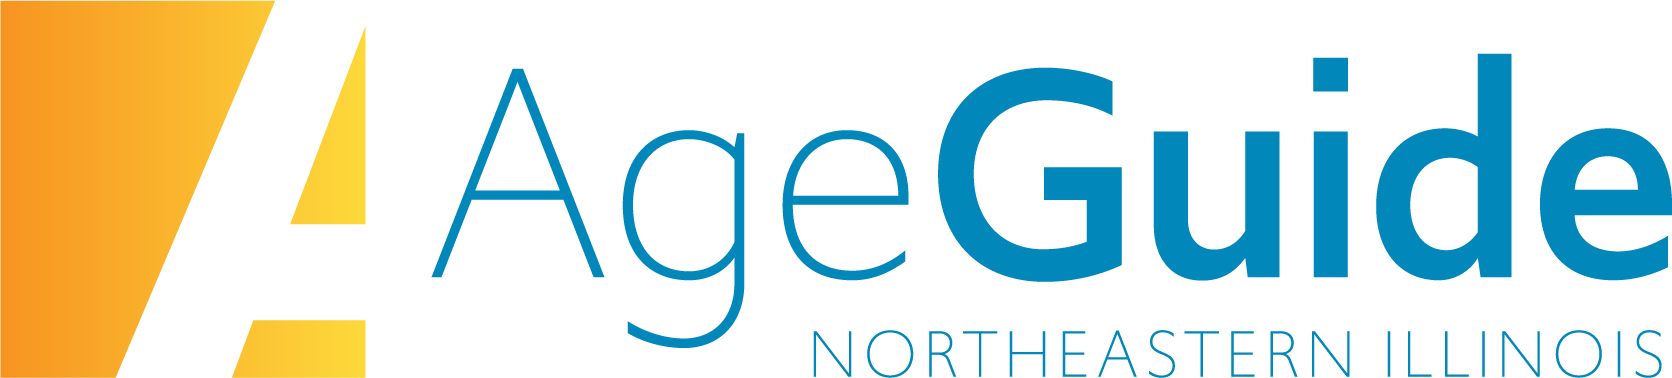 Agency on Aging Northeastern Illinois Logo